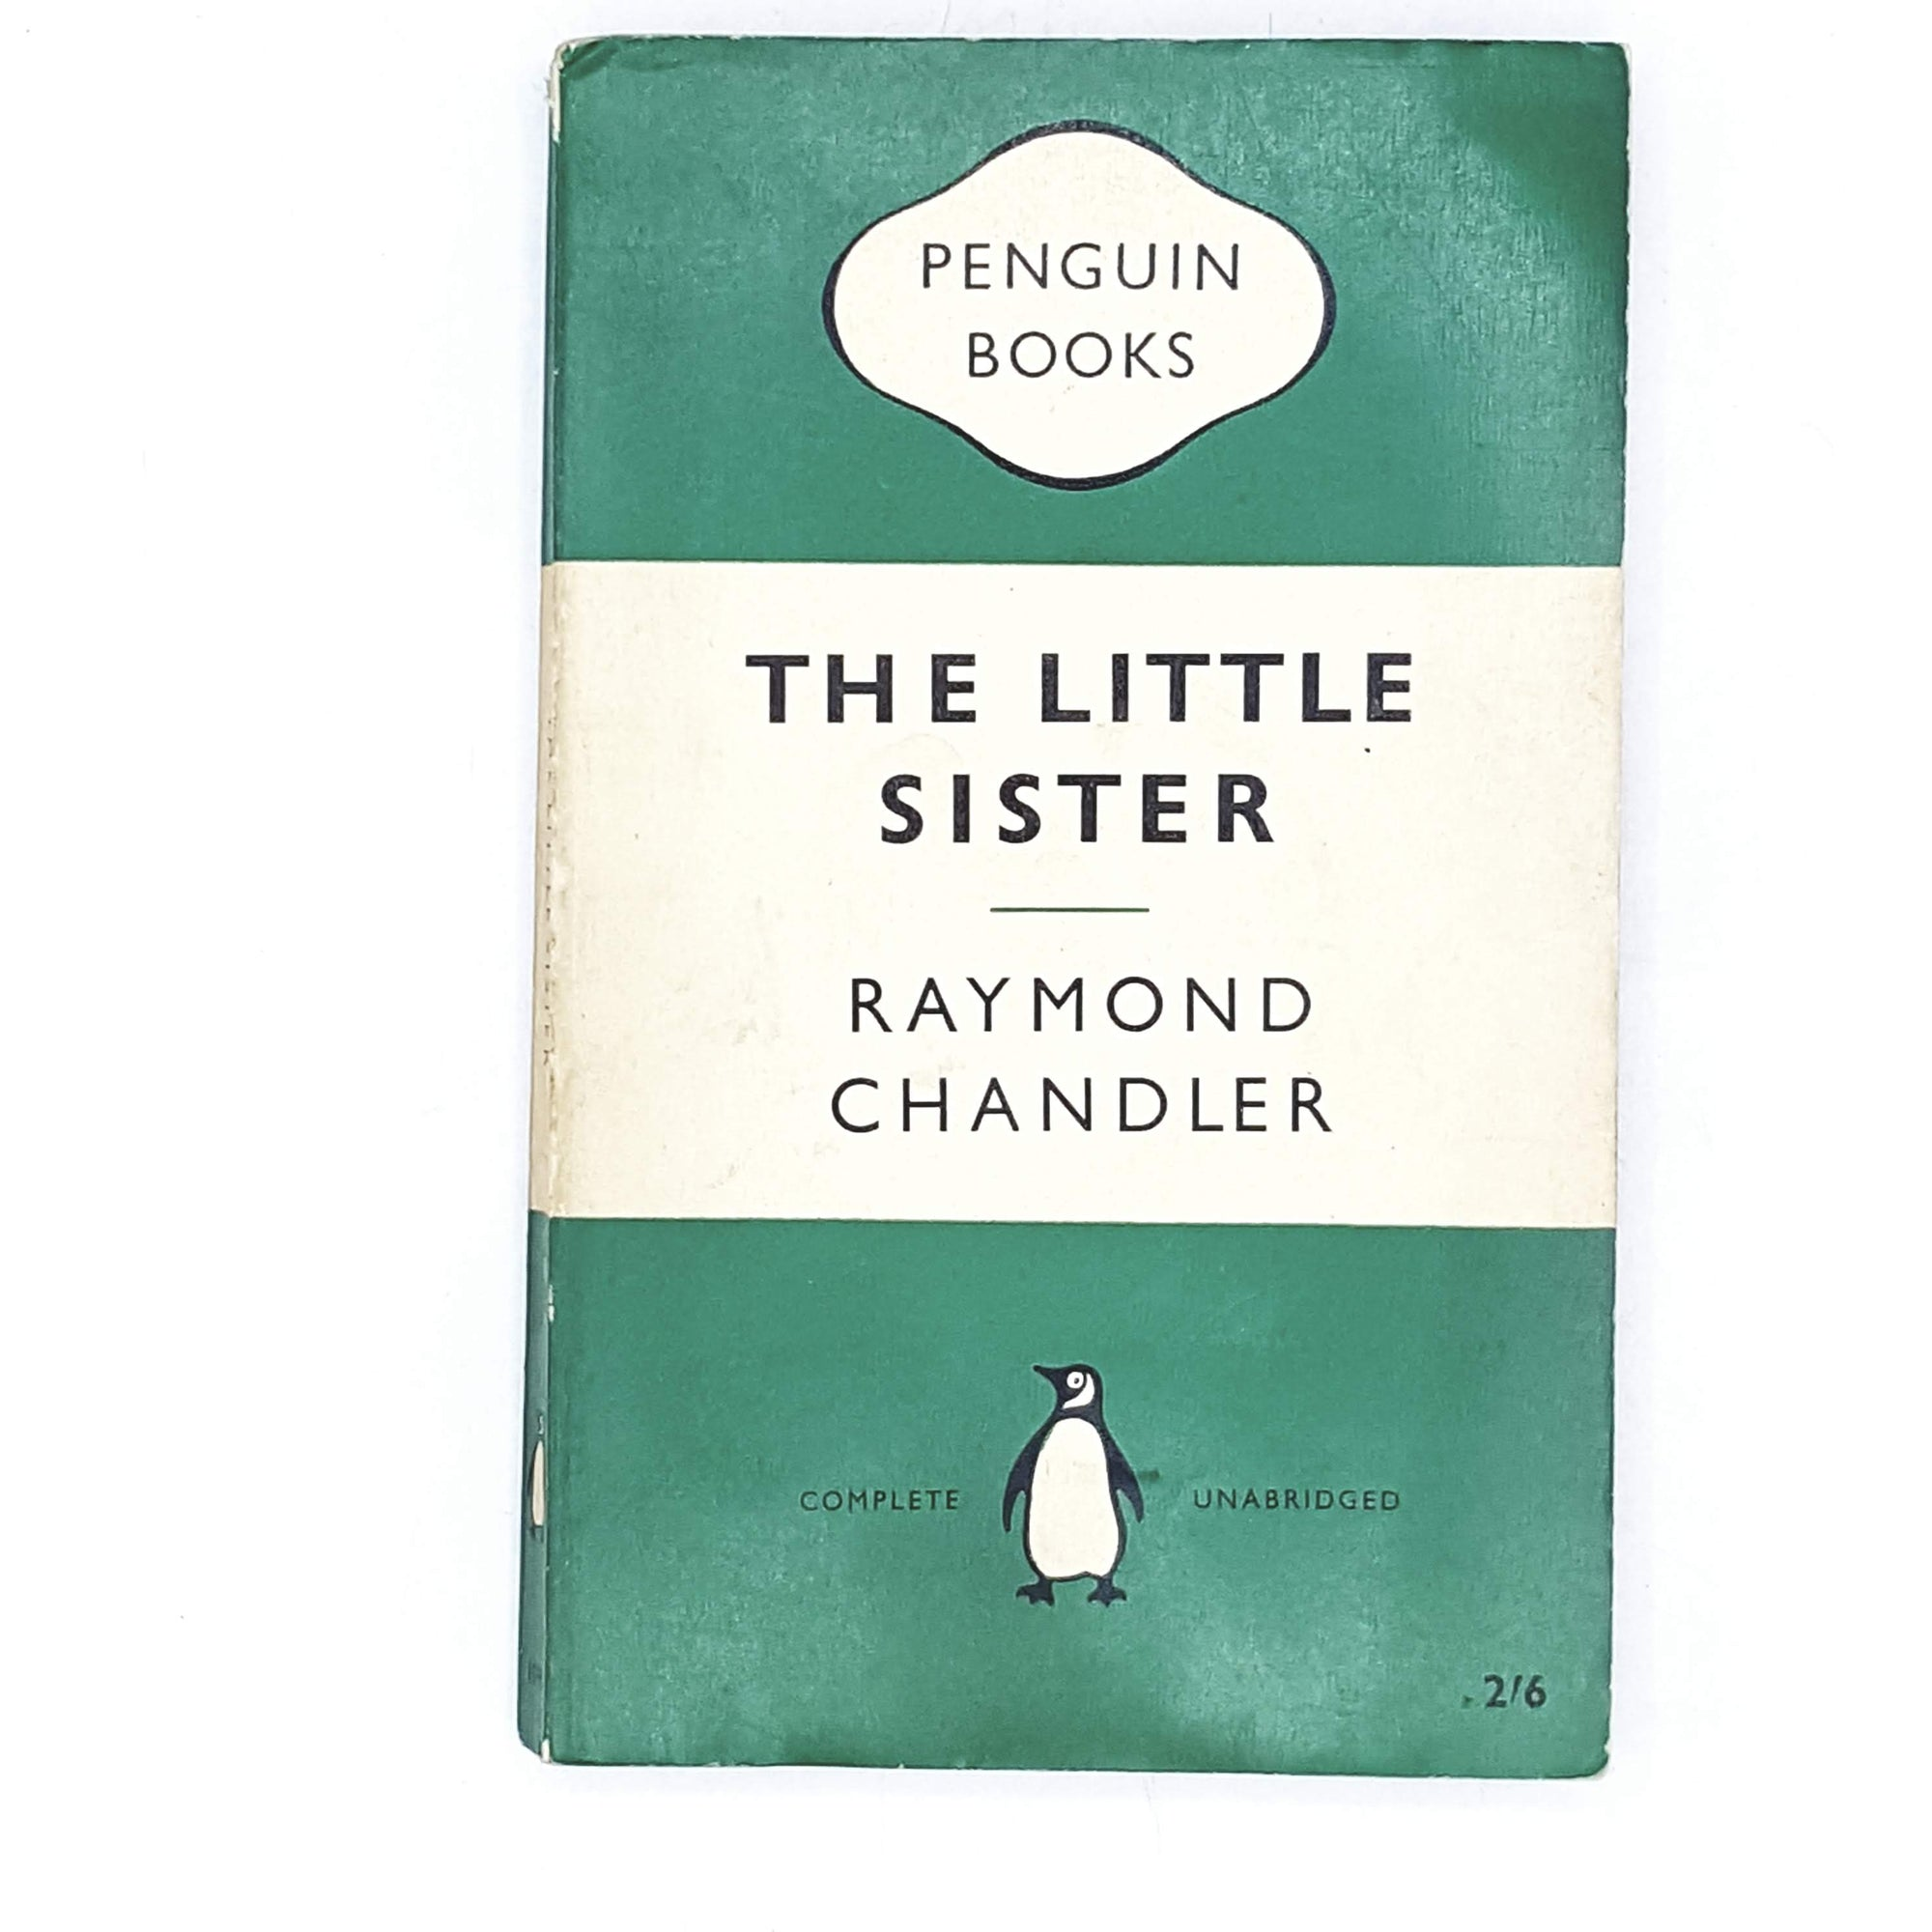 Vintage Penguin The Little Sister by Raymond Chandler 1959